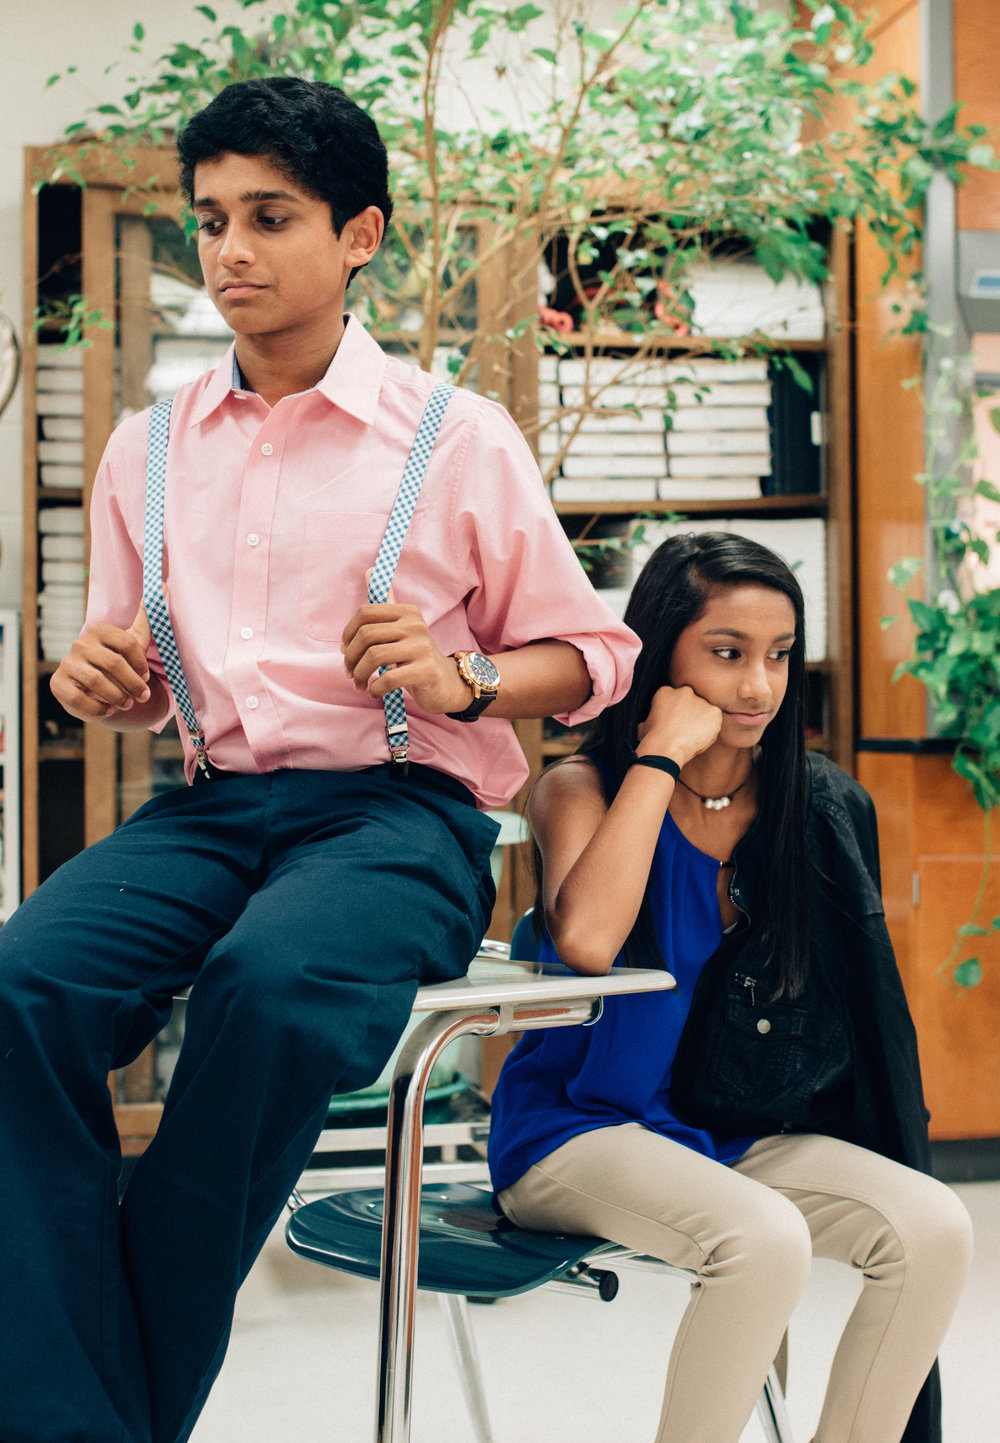 Eshan Patel (Dillard's): Class Club shirt, Class Club suspenders, and Polo chino slacks  Mira Patel (A'gaci at Stones River Mall): Ci Sona faux leather jacket, A'gaci short sleeved top, and Lanjou skinny jean